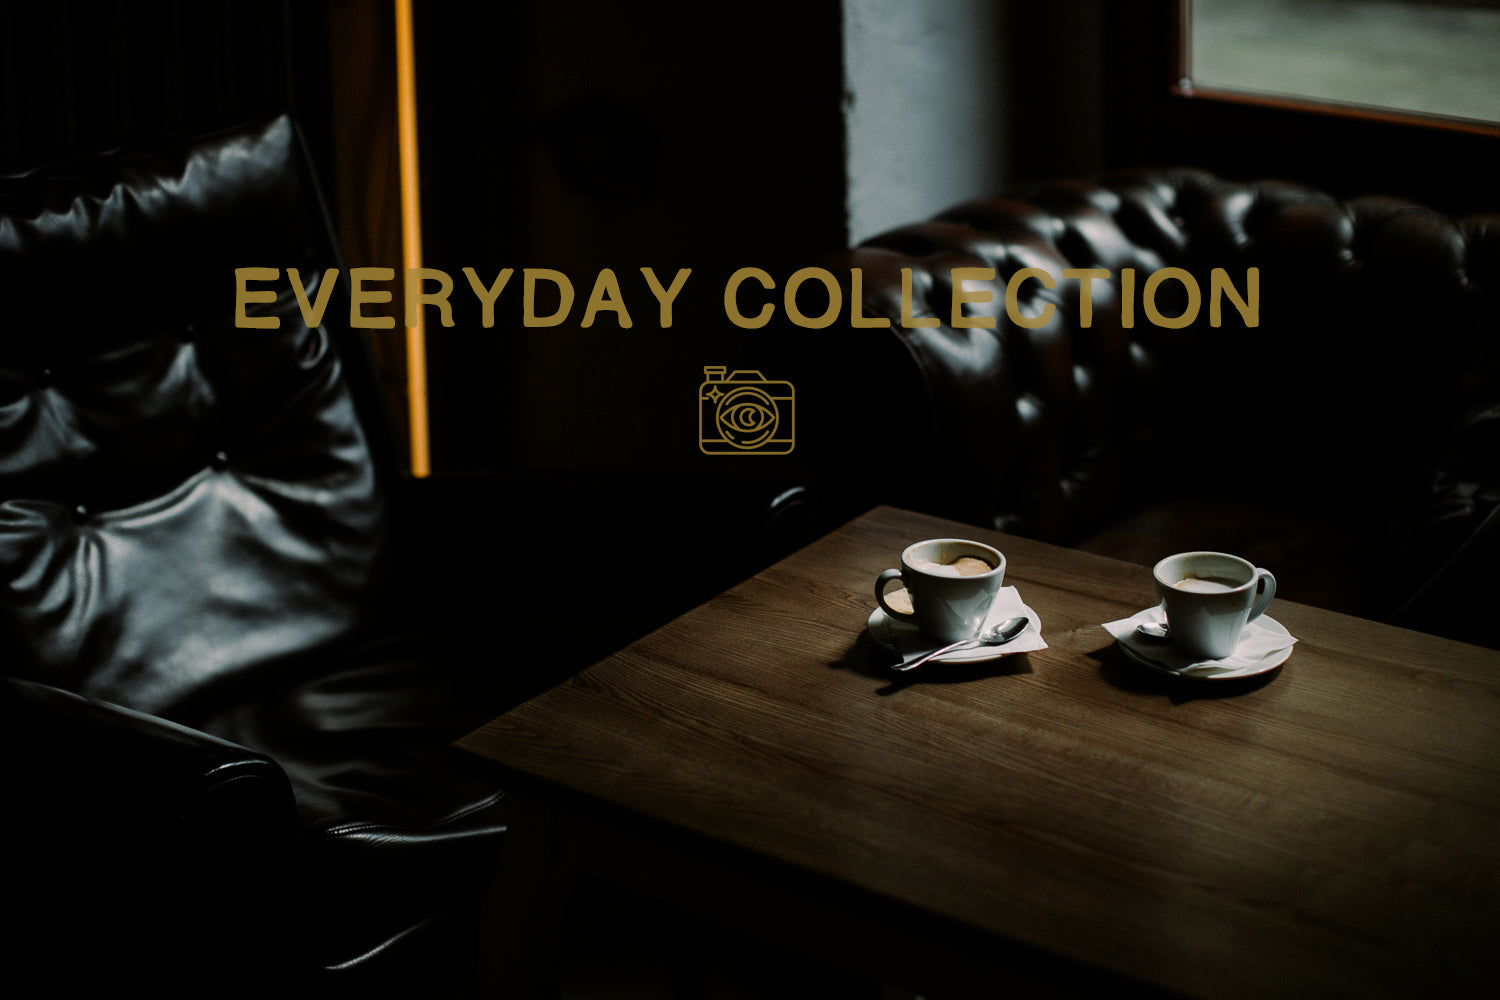 EVERYDAY COLLECTION